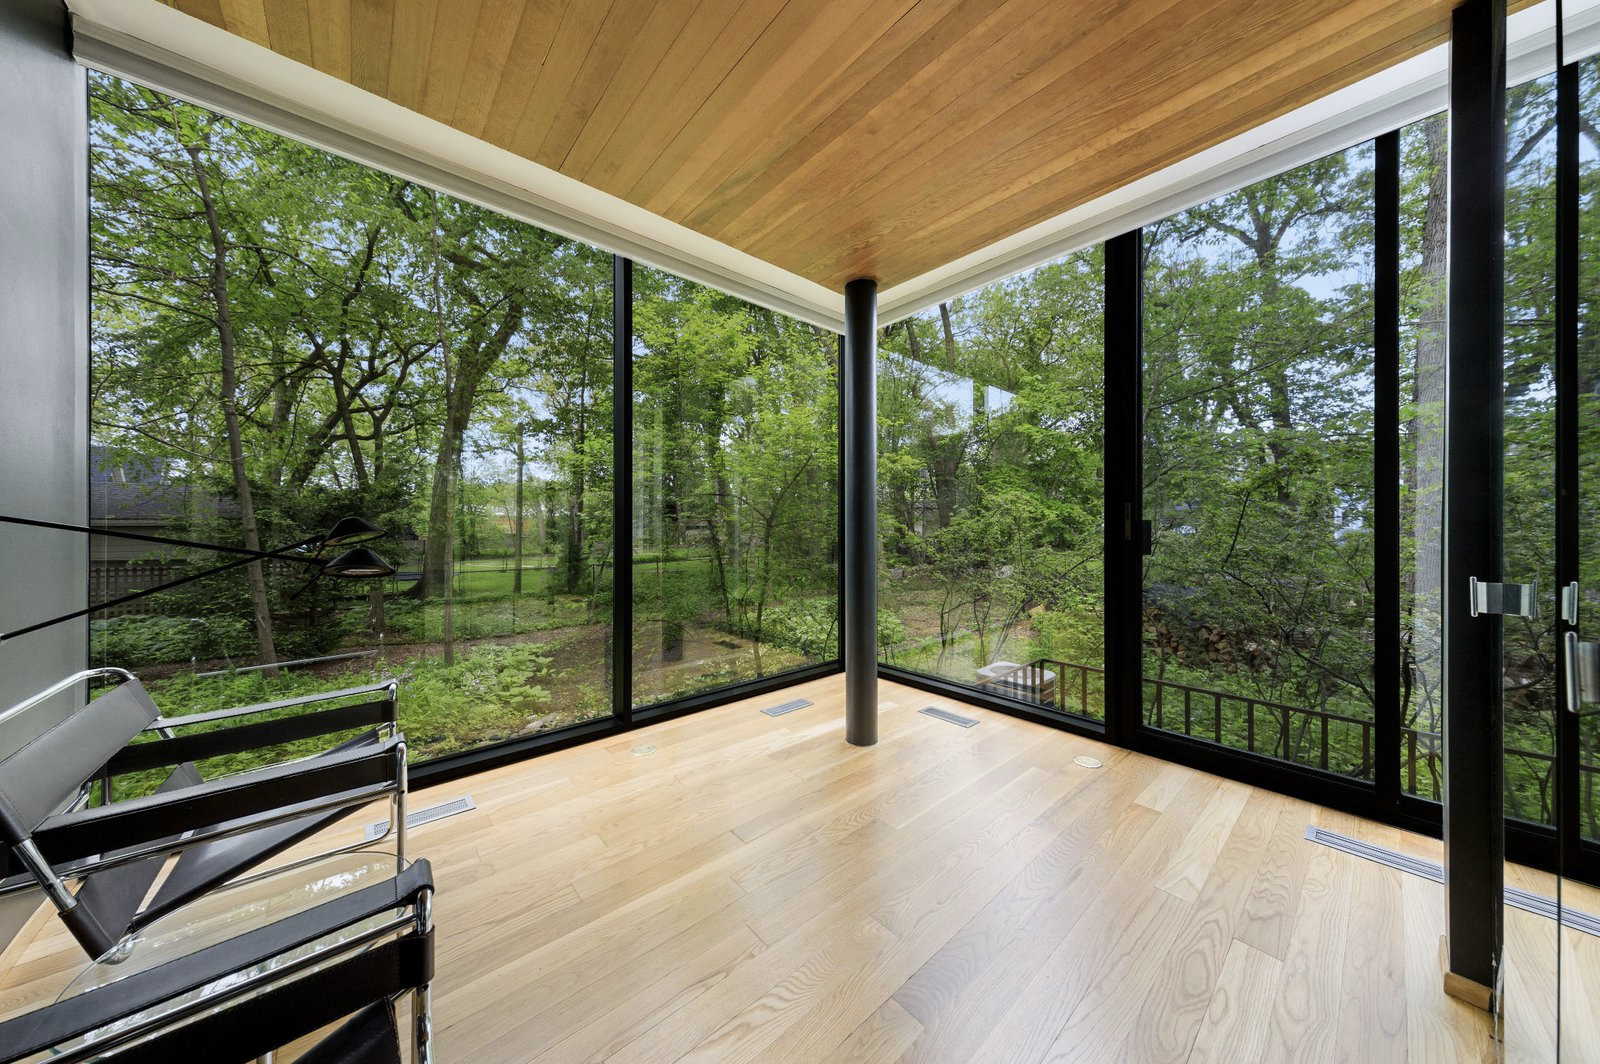 Live like an architect at this Mies-inspired glass and steel home